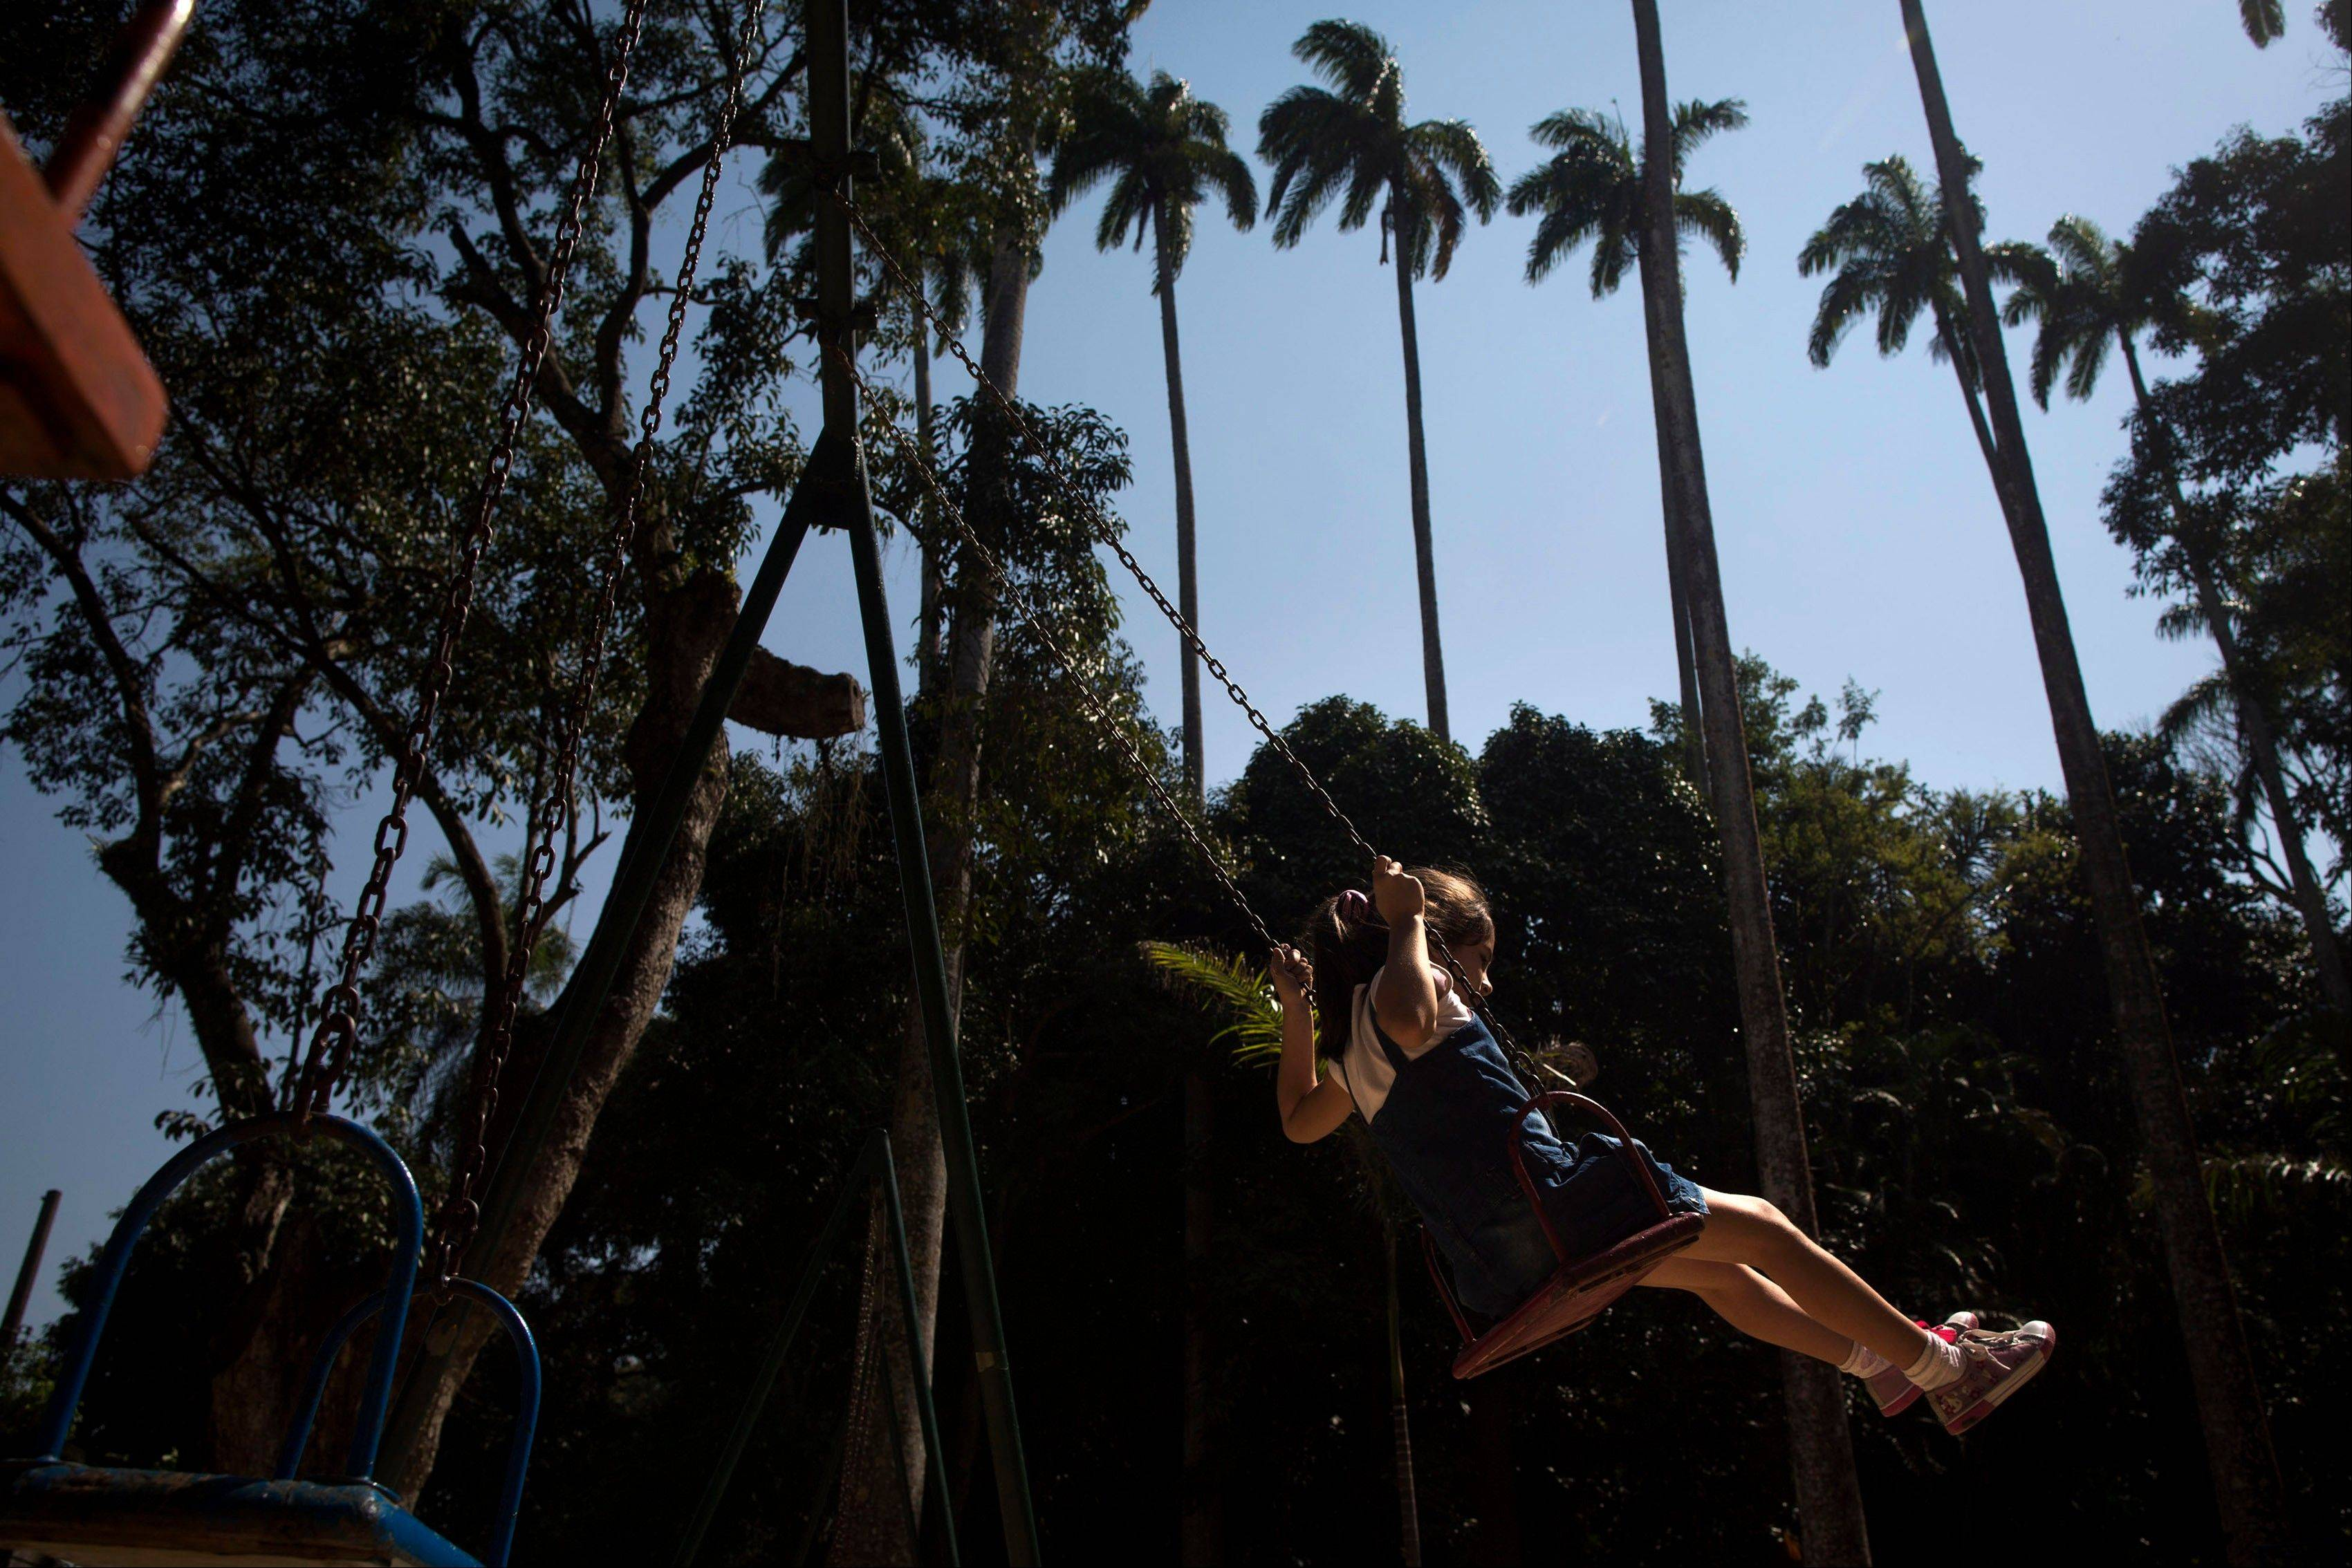 A girl swings at Parque Lage. About a half-mile away from the also-gorgeous but not free Jardim Botanico. Parque Lage has as much charm as its better-known neighbor.